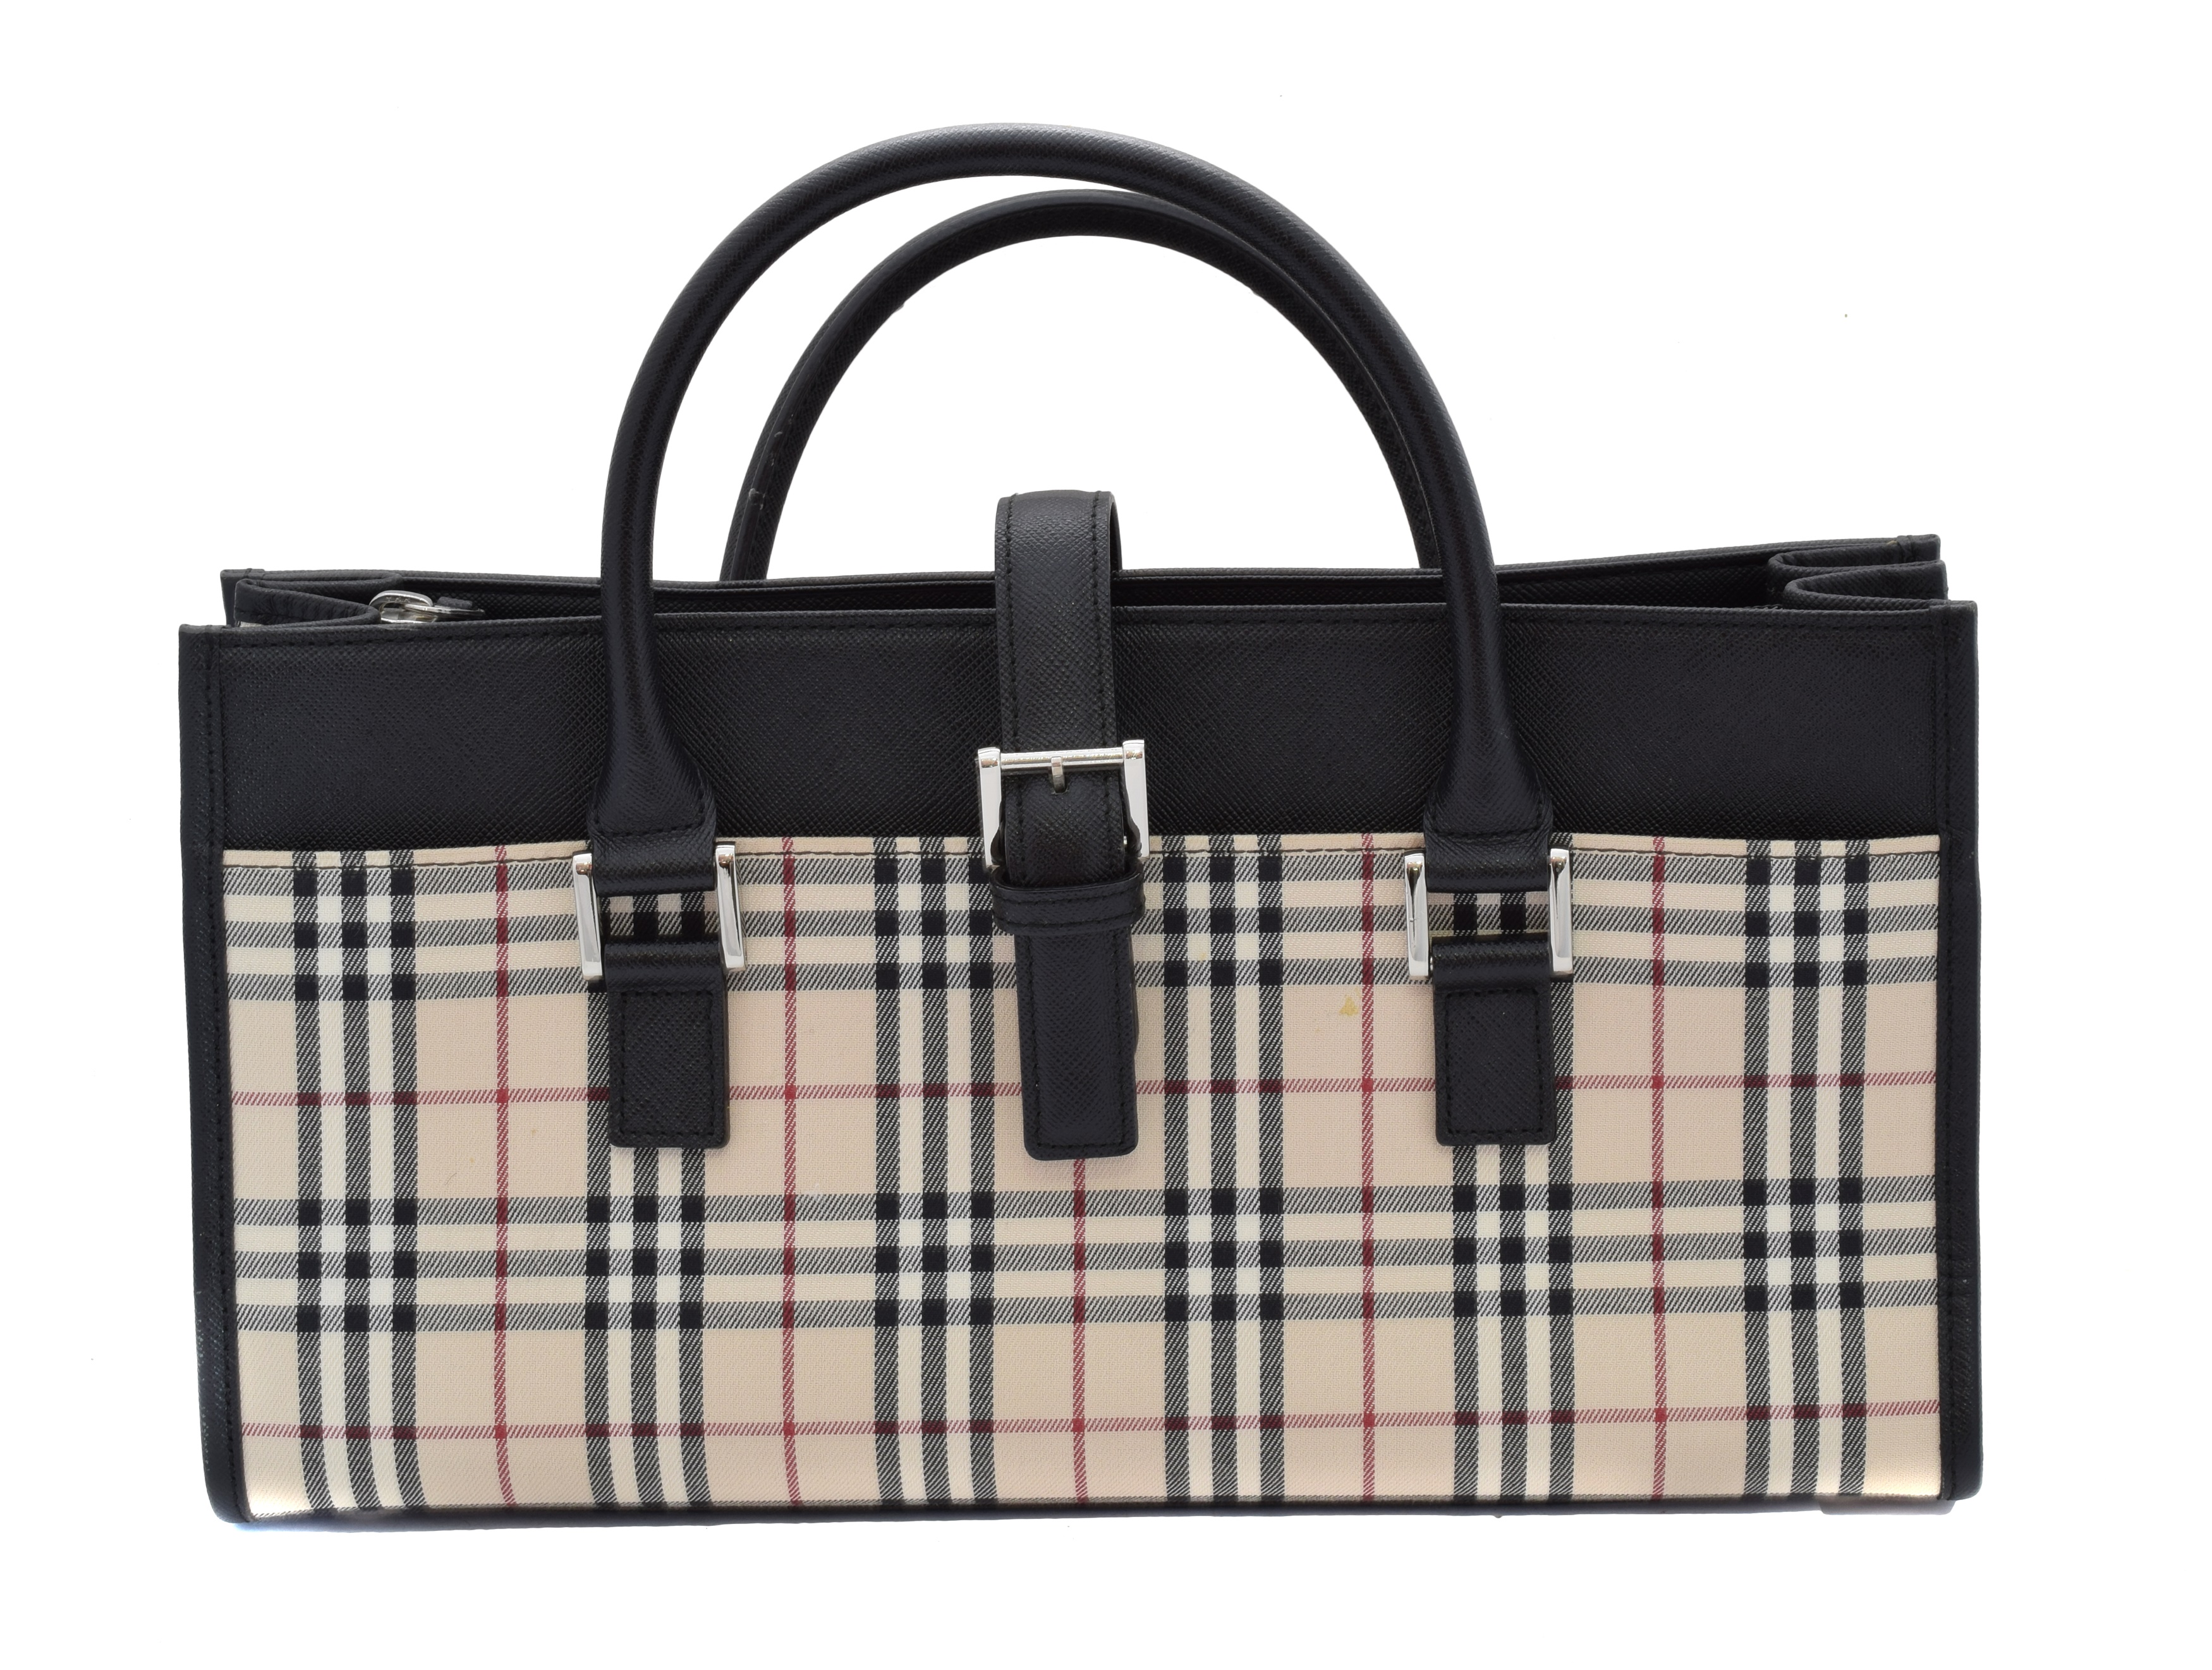 A Burberry Long Tote Shoulder Bag,